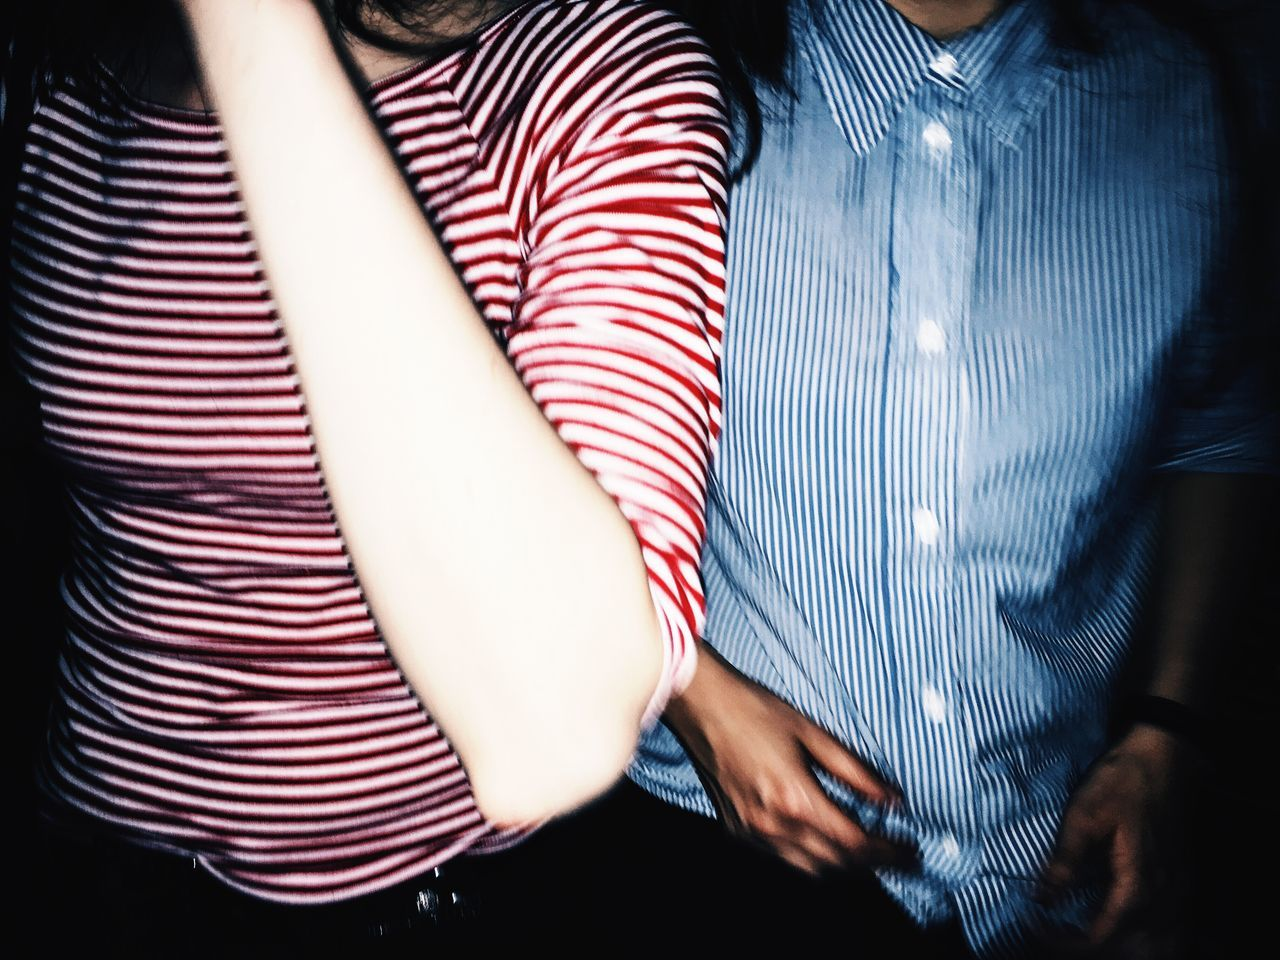 Midsection of women wearing striped clothes